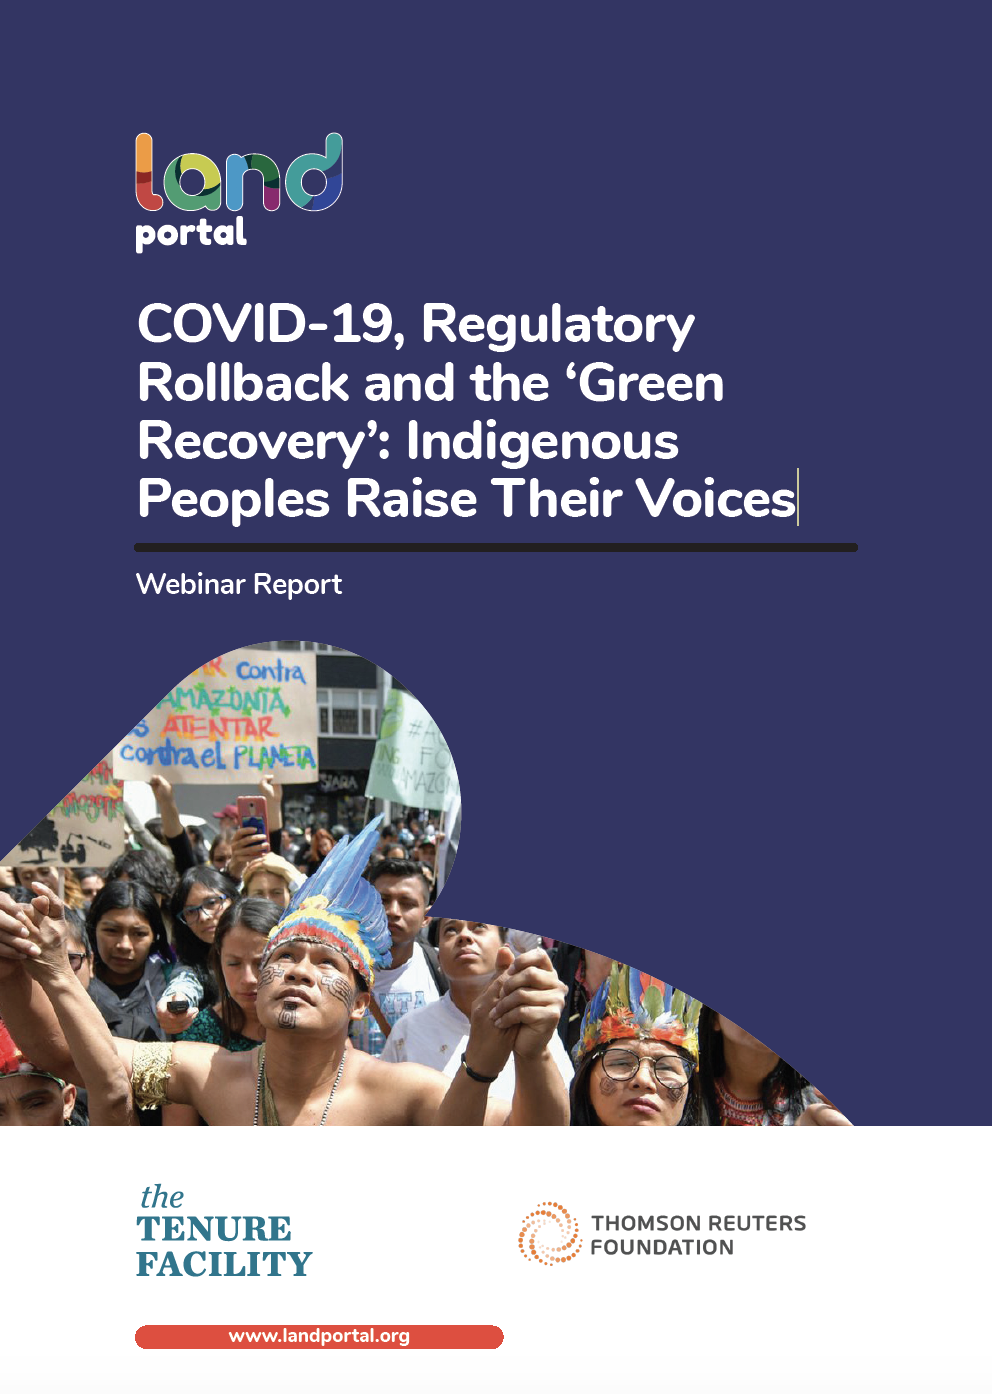 COVID-19, Regulatory Rollback and the 'Green Recovery': Indigenous Peoples Raise Their Voices